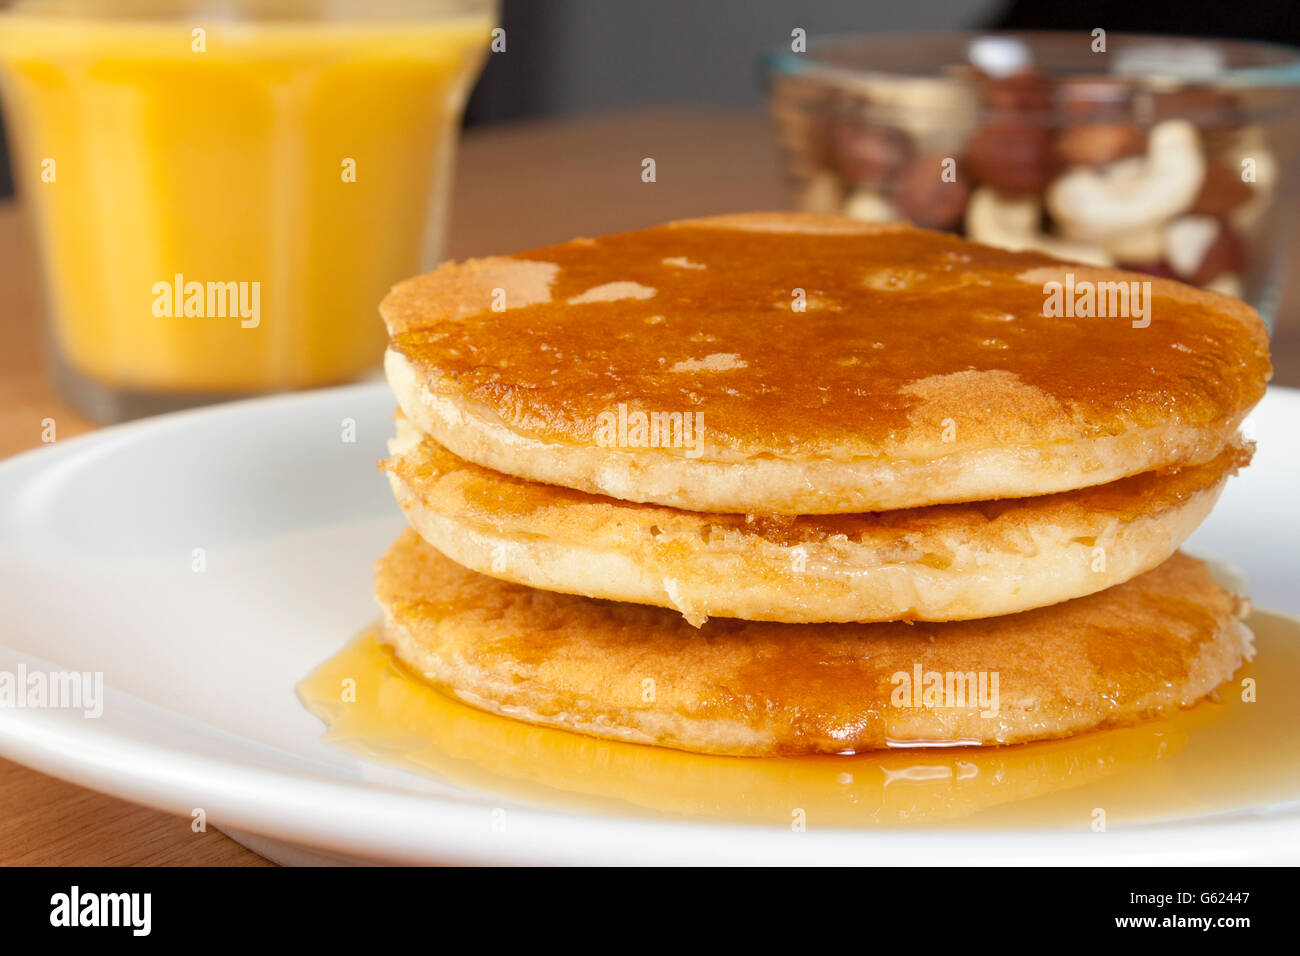 Close up shot of a stack of fresh golden pancakes on a plate covered in rich maple syrup aside a glass of fresh - Stock Image